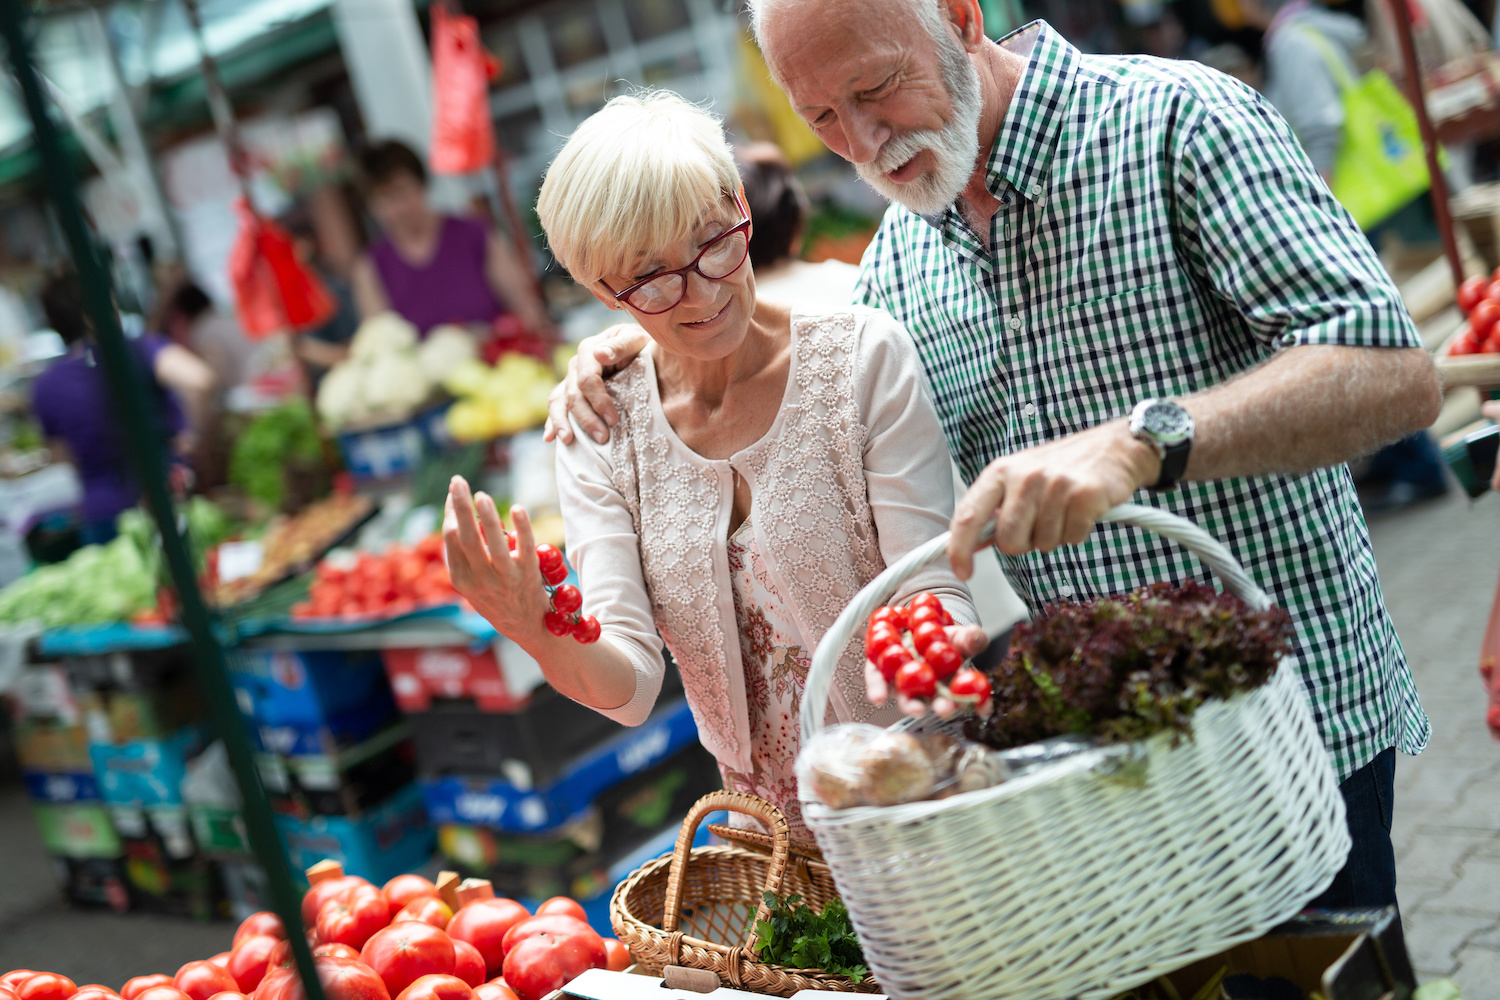 Senior shopping couple with basket on the market. Healthy diet.   Clarity Hearing